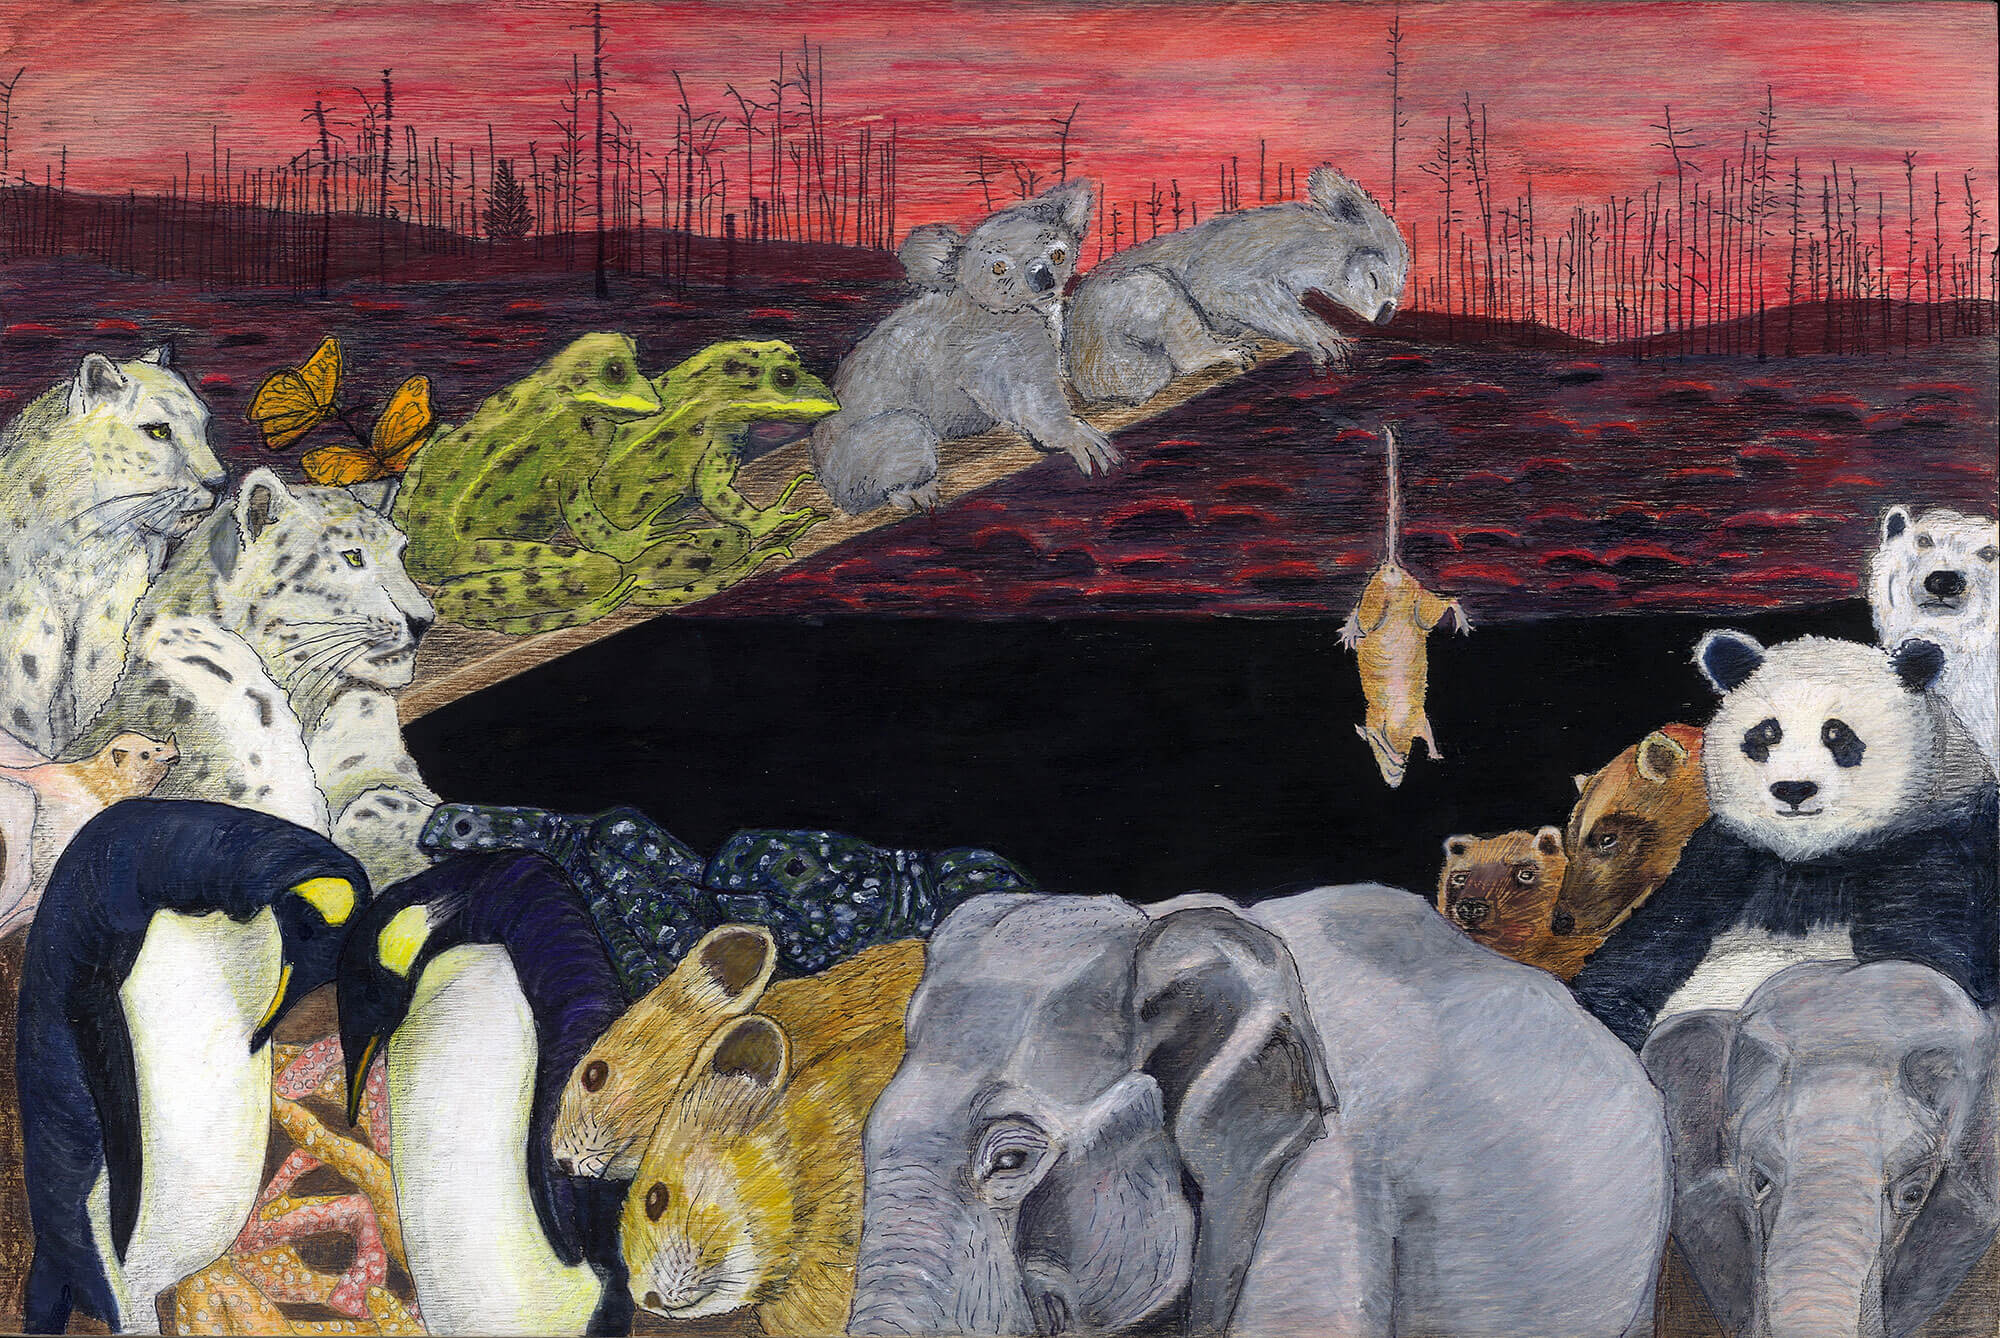 Painting of animals lining up in twos up a ramp with a rat falling off